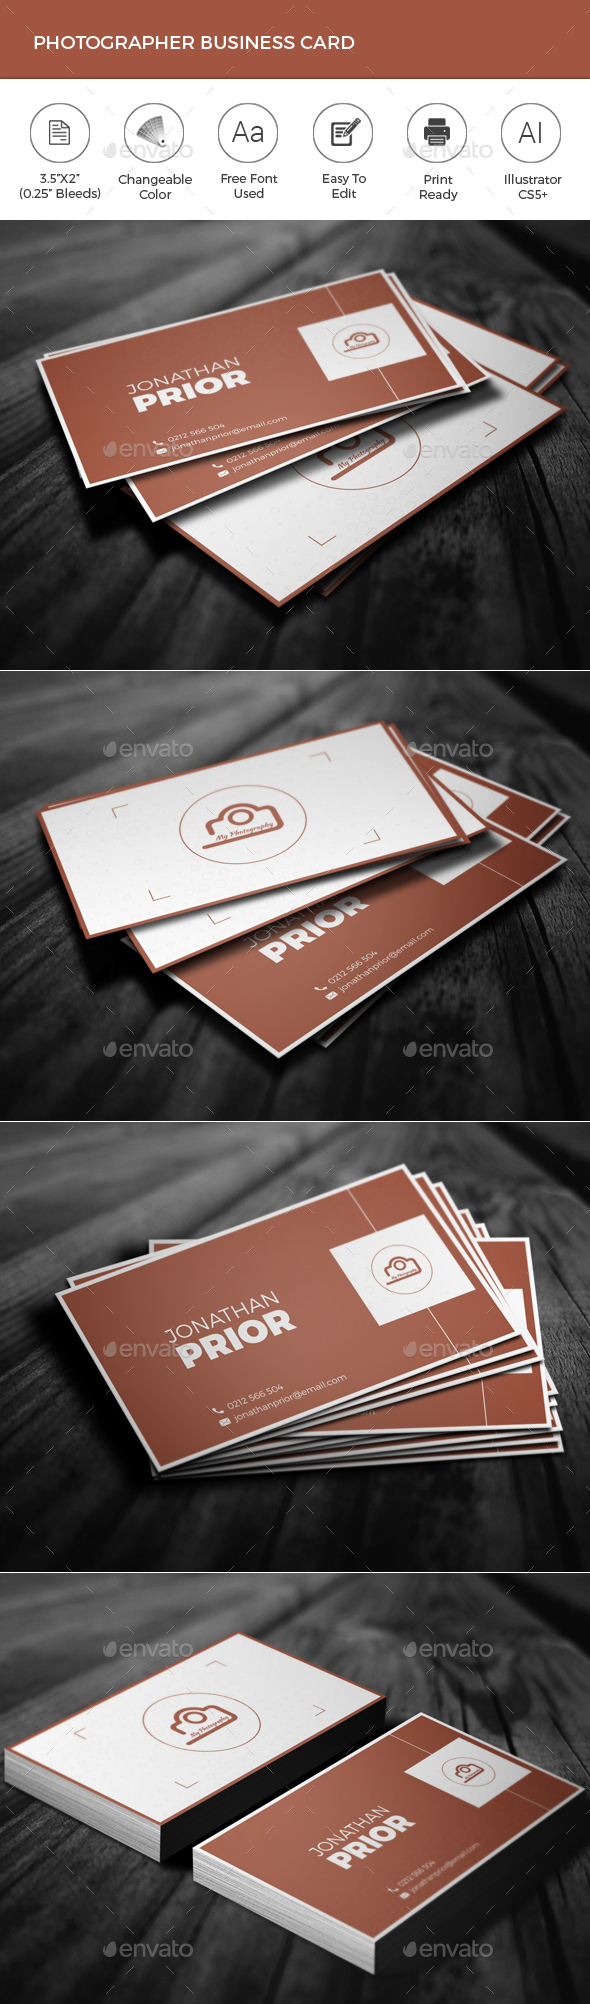 Business card templates designs with minimum adobe cs version cs5 business card templates designs with minimum adobe cs version cs5 page 9 reheart Gallery